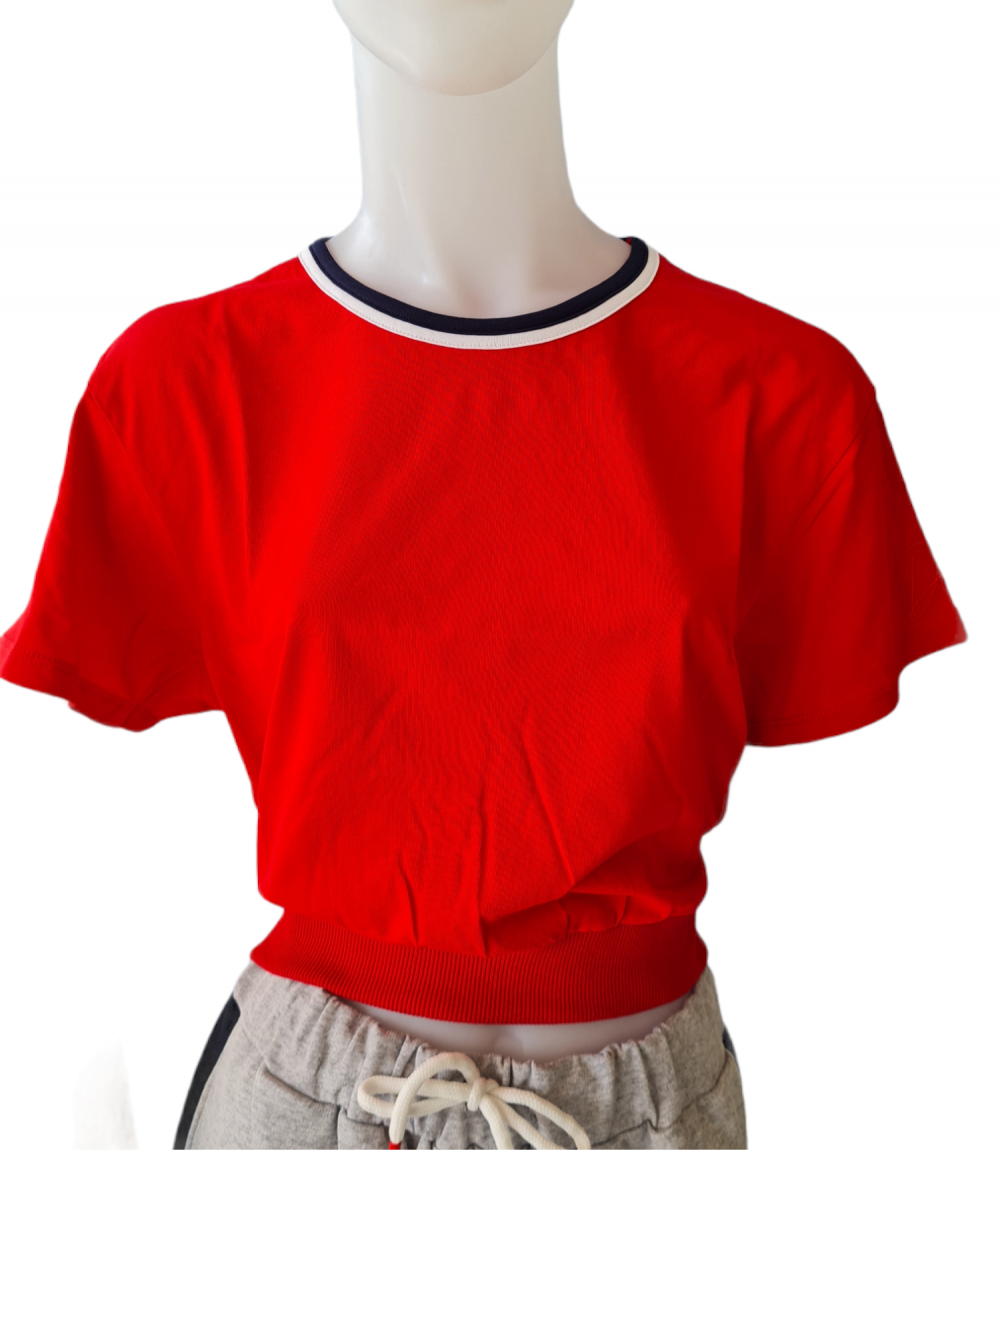 DW0215 T-SHIRT CROP DATCH